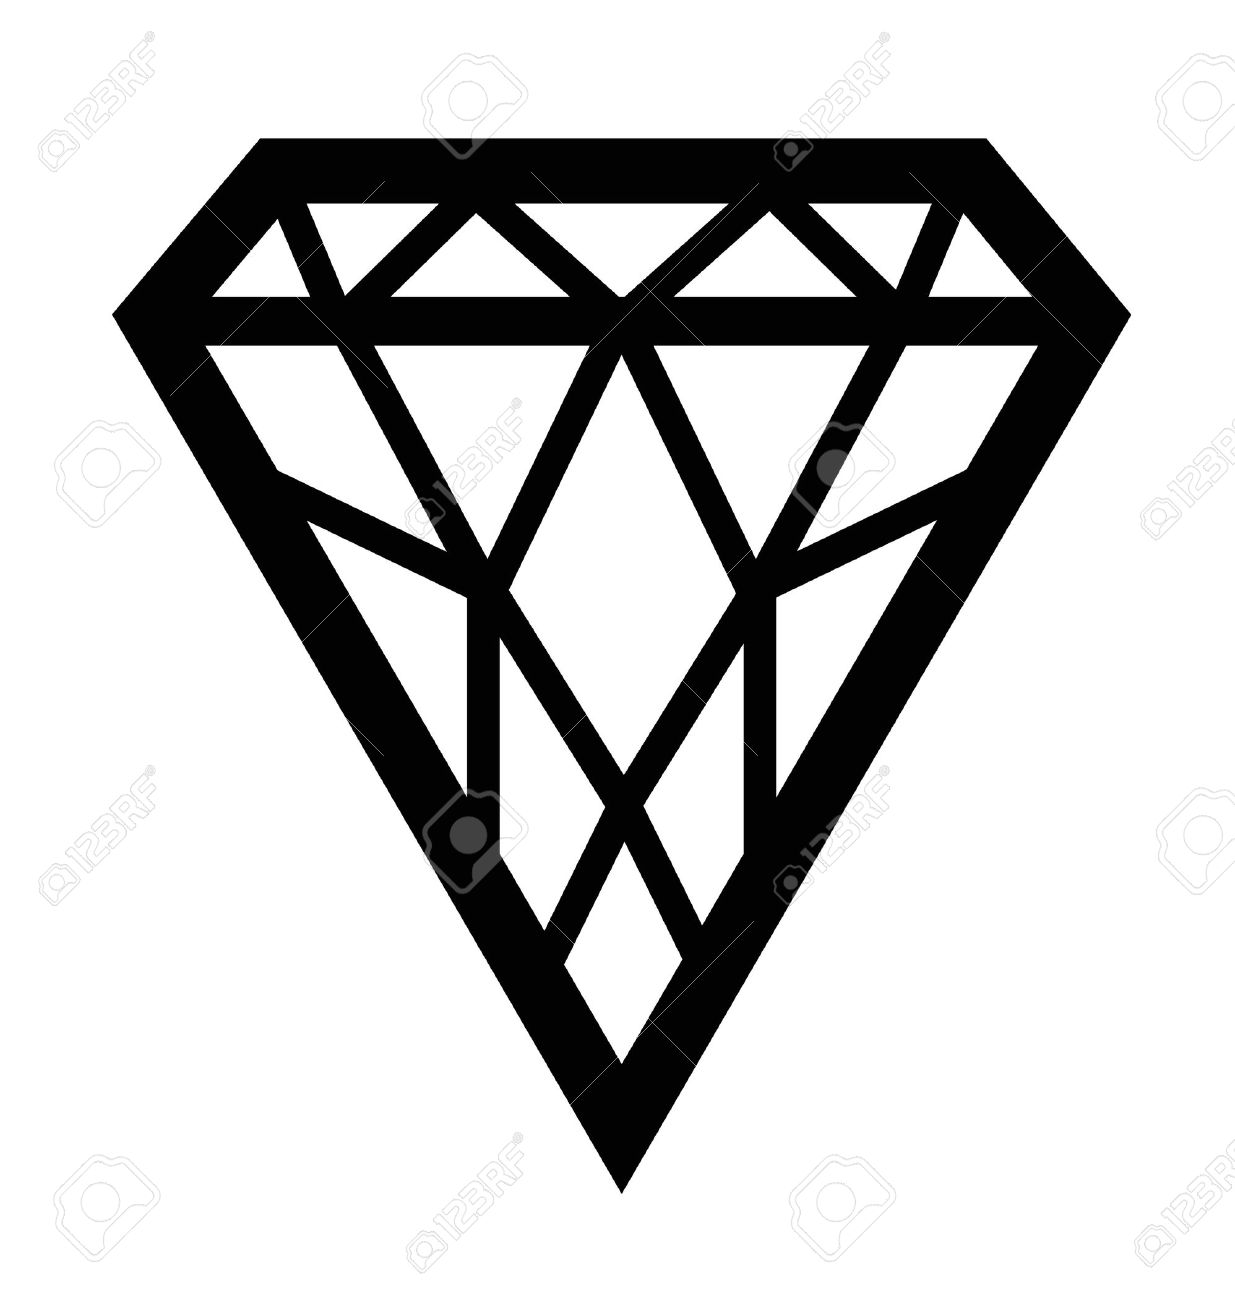 black silhouetted diamond shape with facets isolated on white